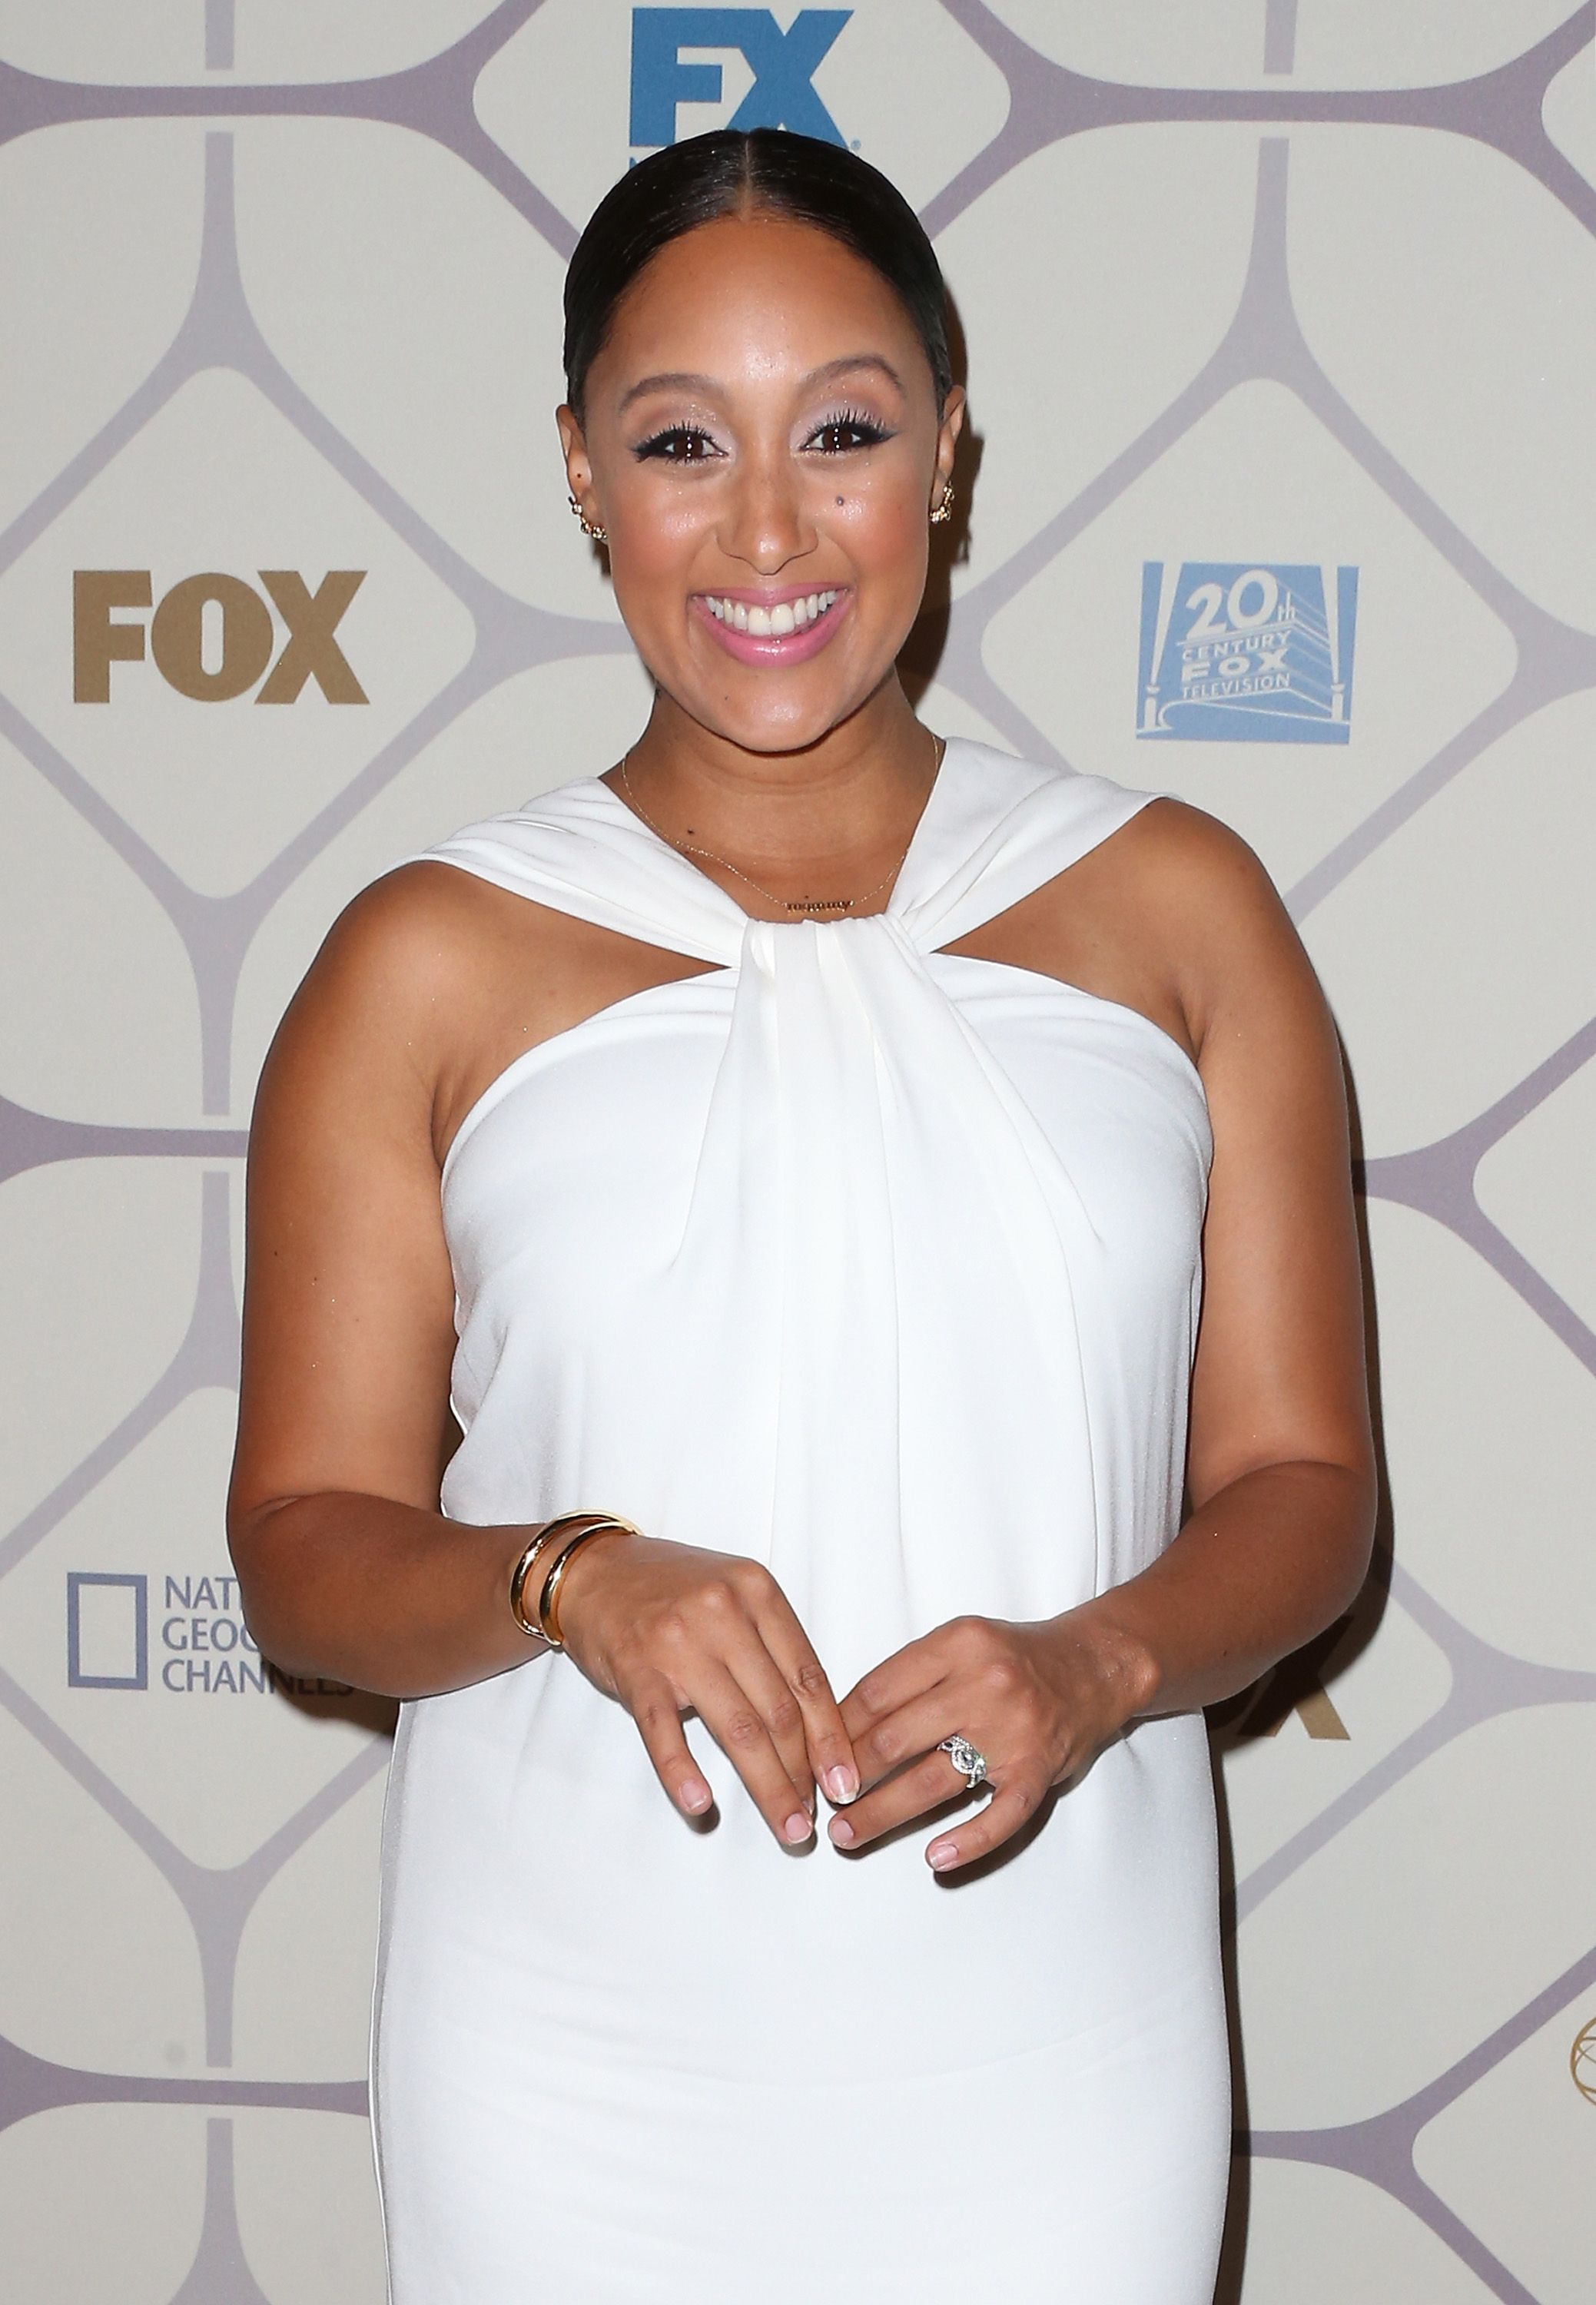 Tamera Mowry at the 67th Primetime Emmy Awards Fox after-party on September 20, 2015 in Los Angeles. | Photo: Getty Images